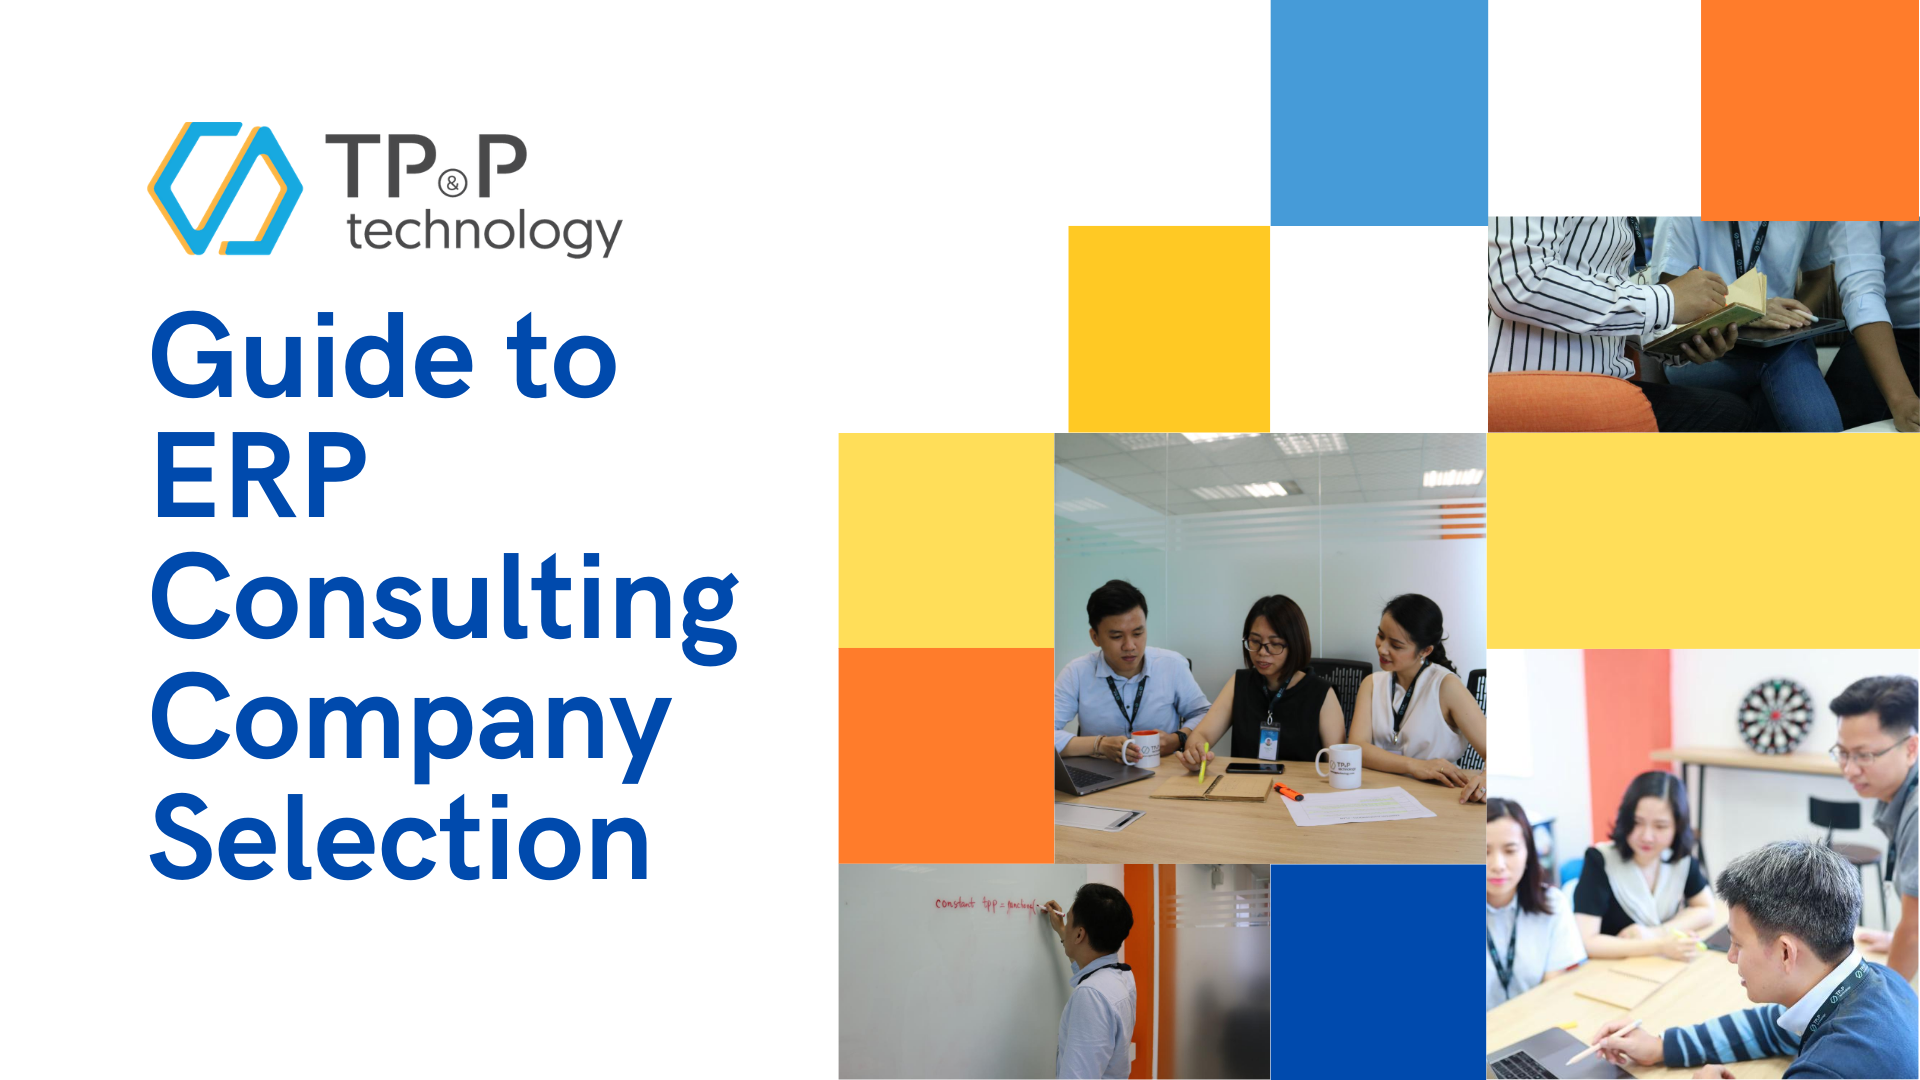 Guide to ERP Consulting Company Selection